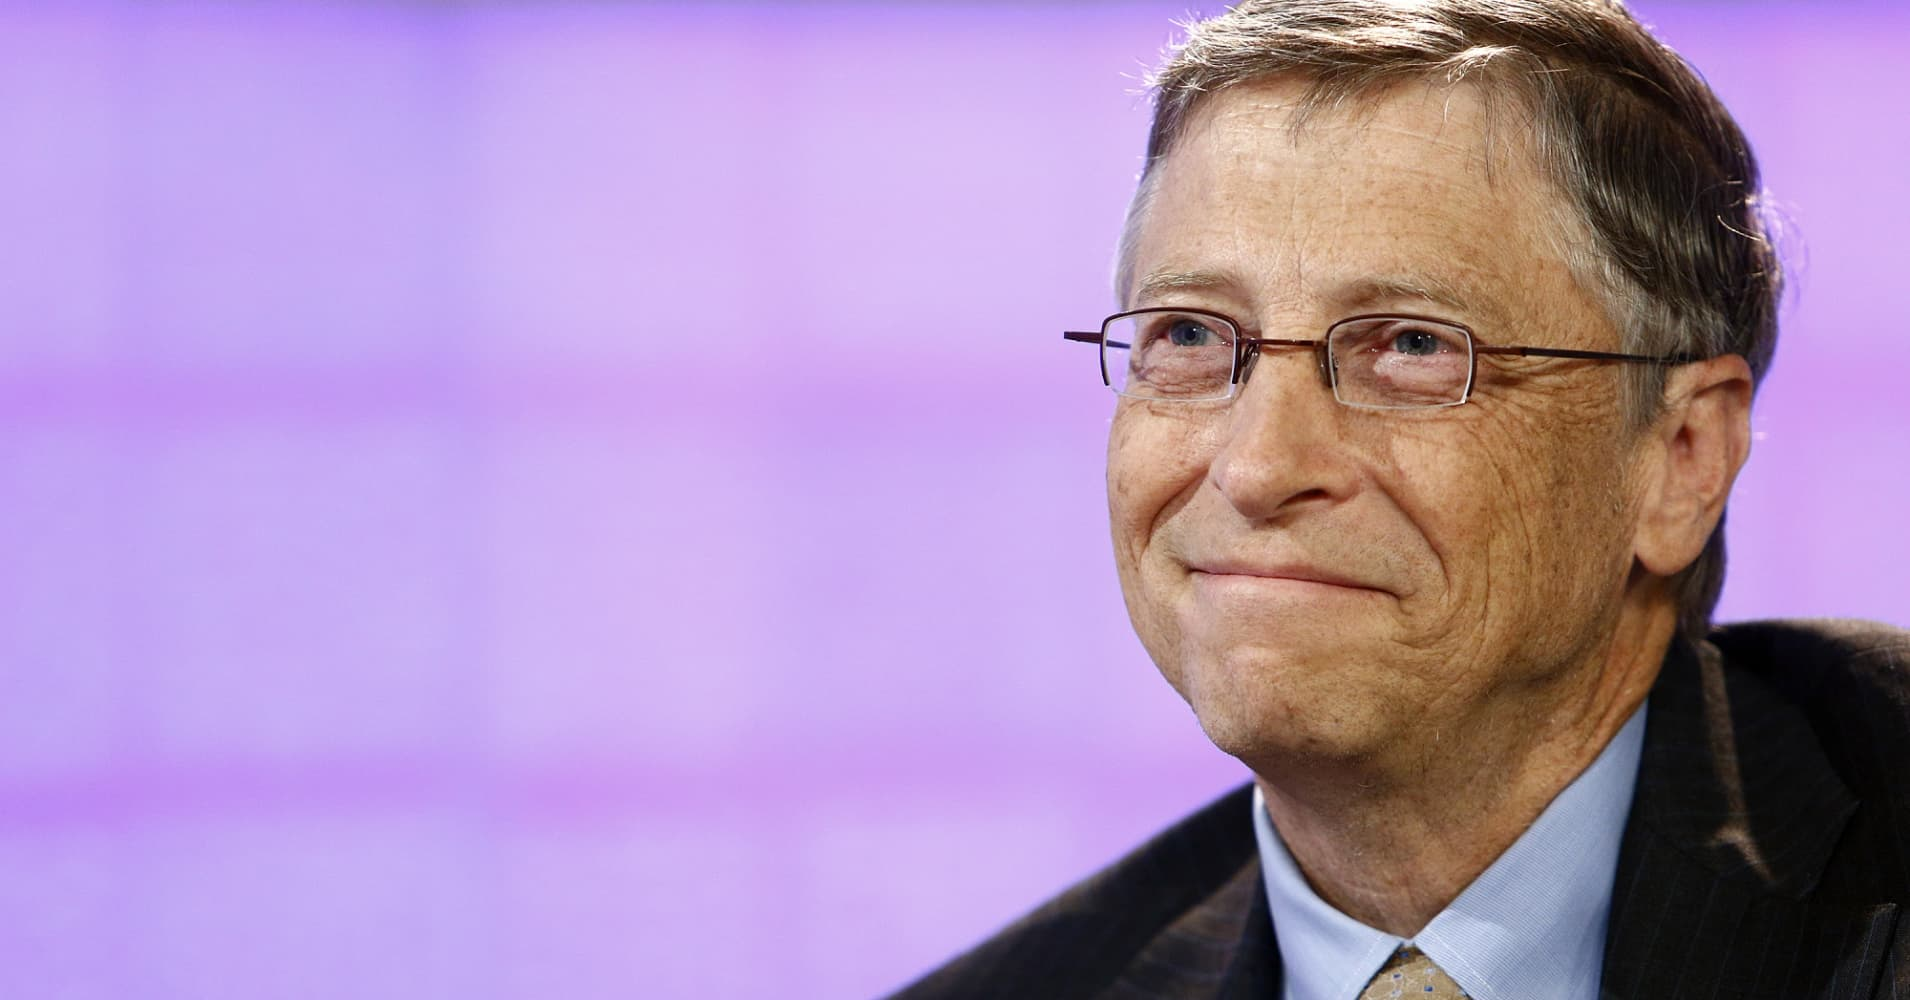 Bill Gates: The world would be better if millions of people read this book